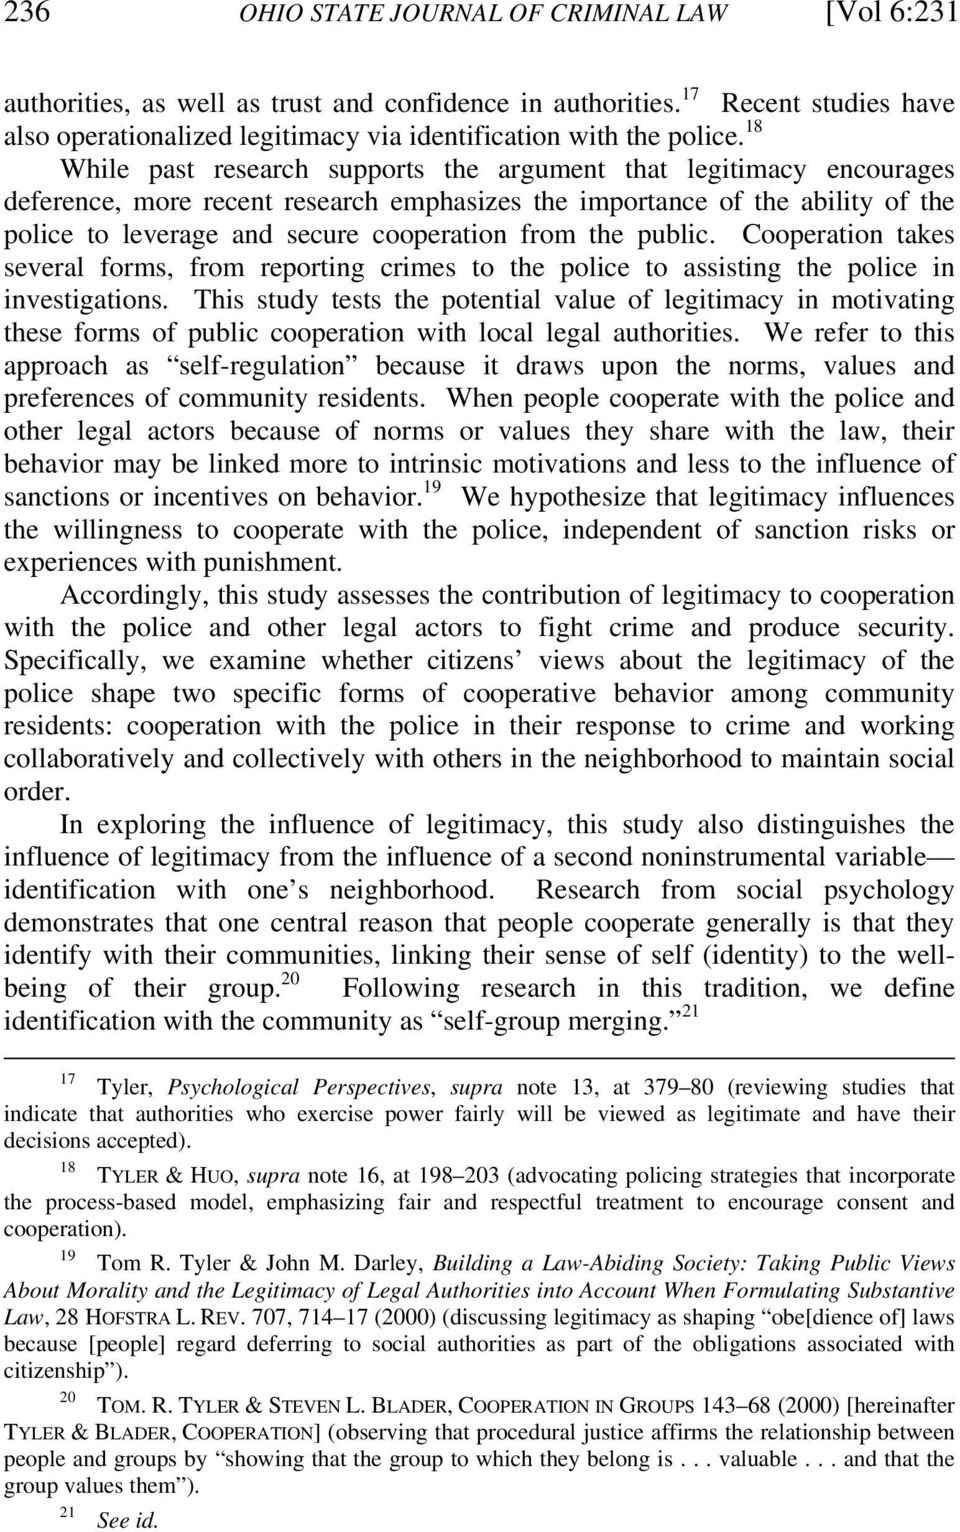 18 While past research supports the argument that legitimacy encourages deference, more recent research emphasizes the importance of the ability of the police to leverage and secure cooperation from